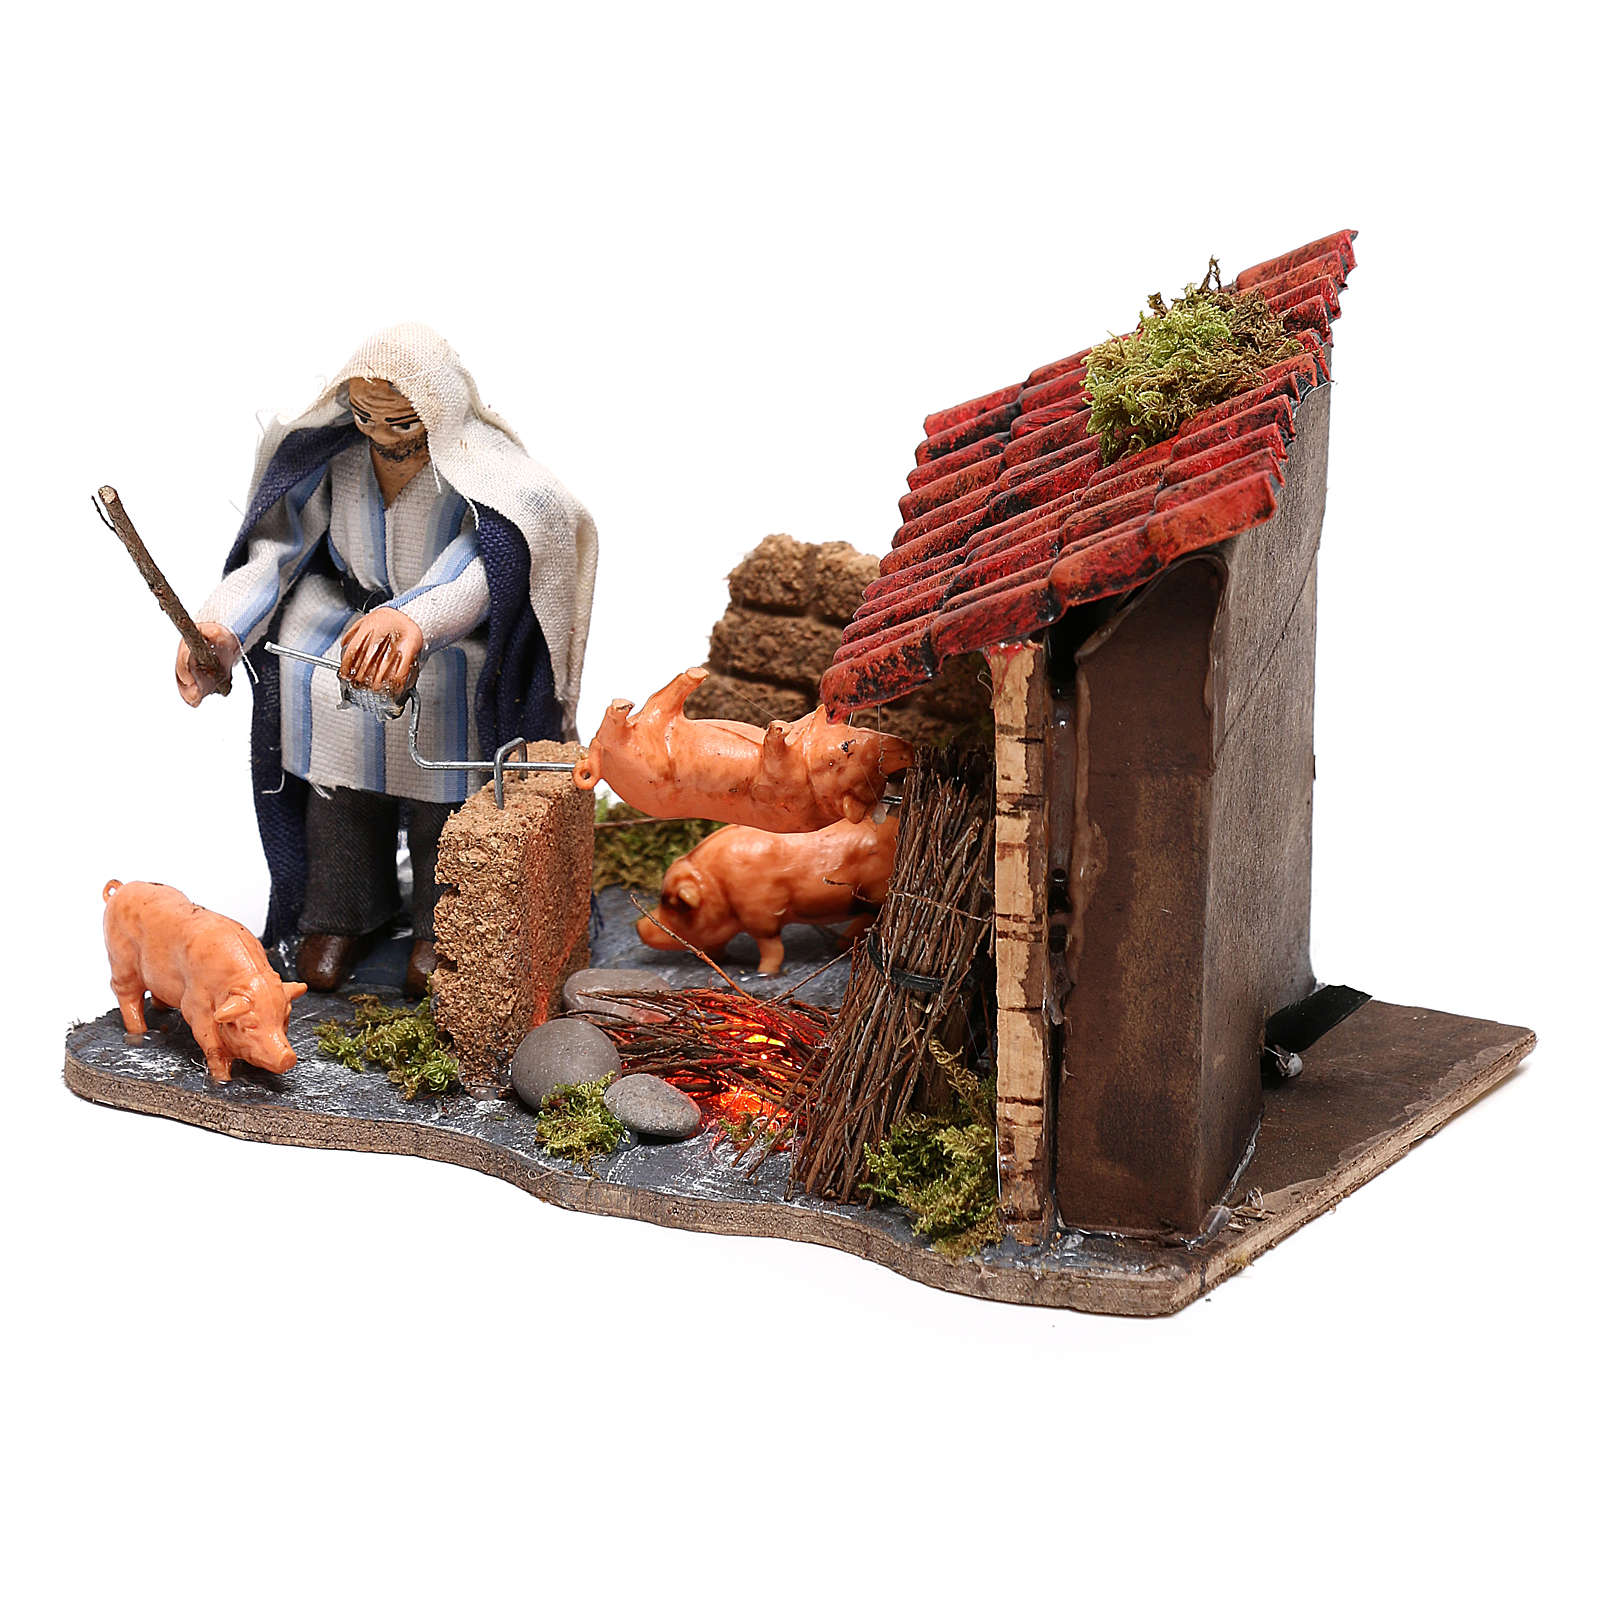 Neapolitan nativity scene moving roasted pork  10x15x10 cm 4